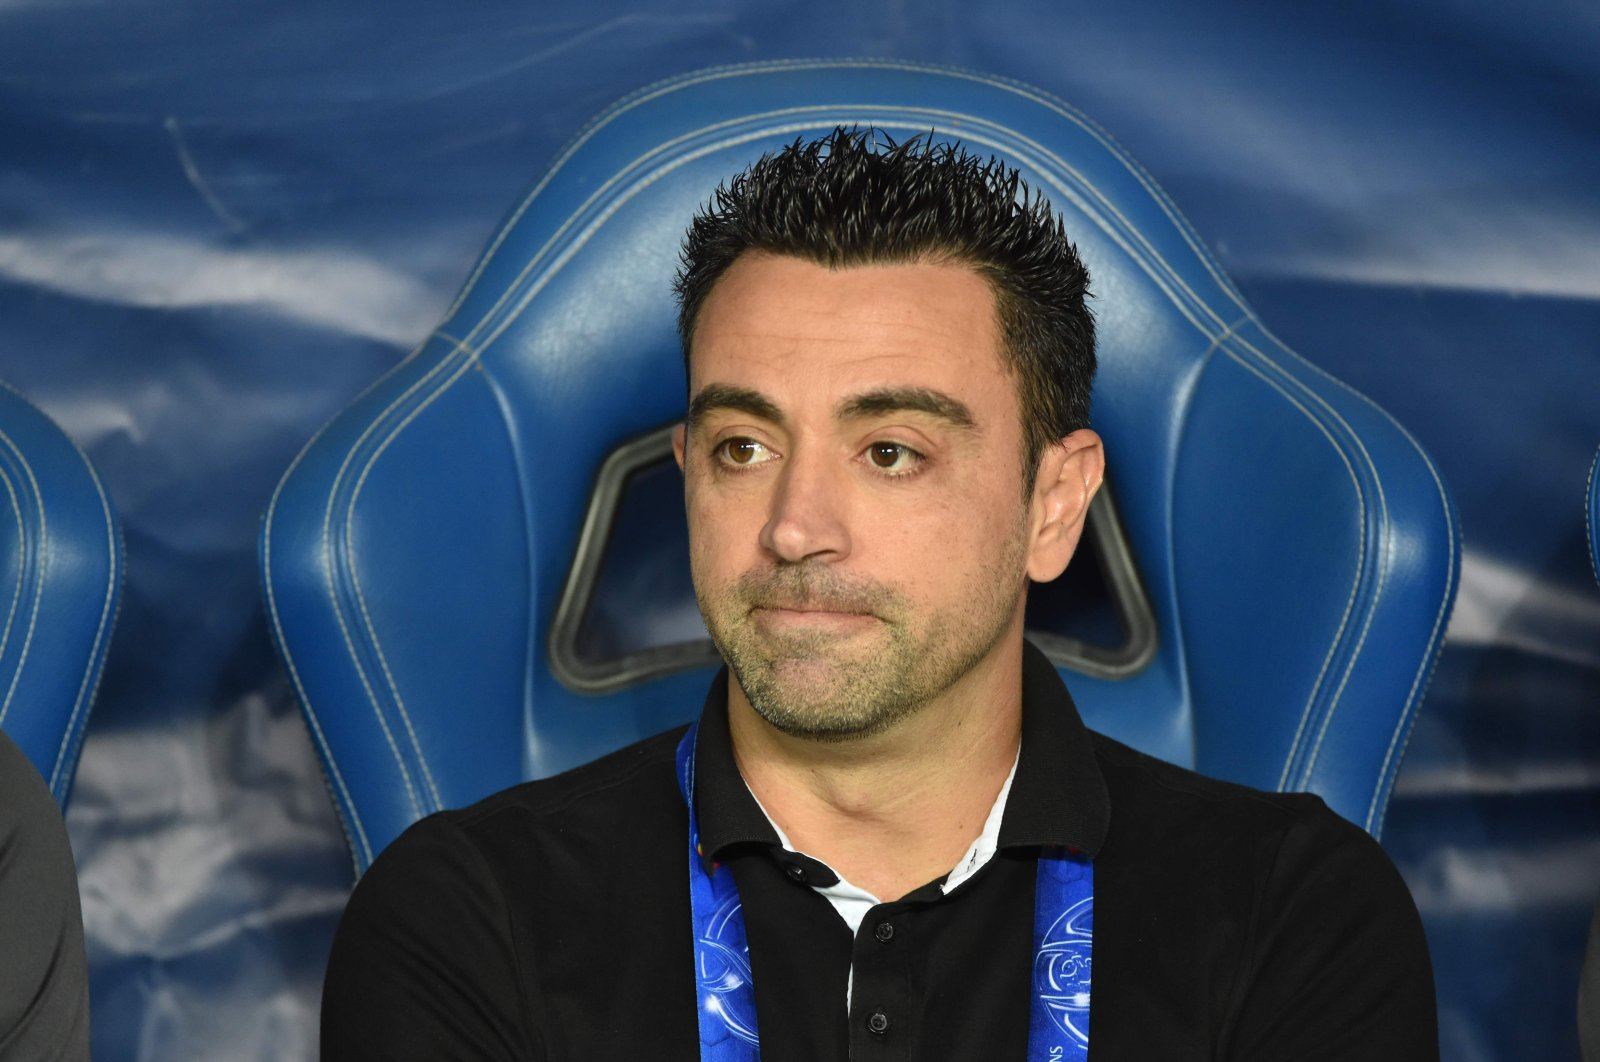 Al-Sadd's coach Xavi Hernandez watches the second leg of the AFC Champions League semifinal football match between Al-Sadd and Al Hilal in Riyadh on Oct. 22, 2019. (AFP Photo)